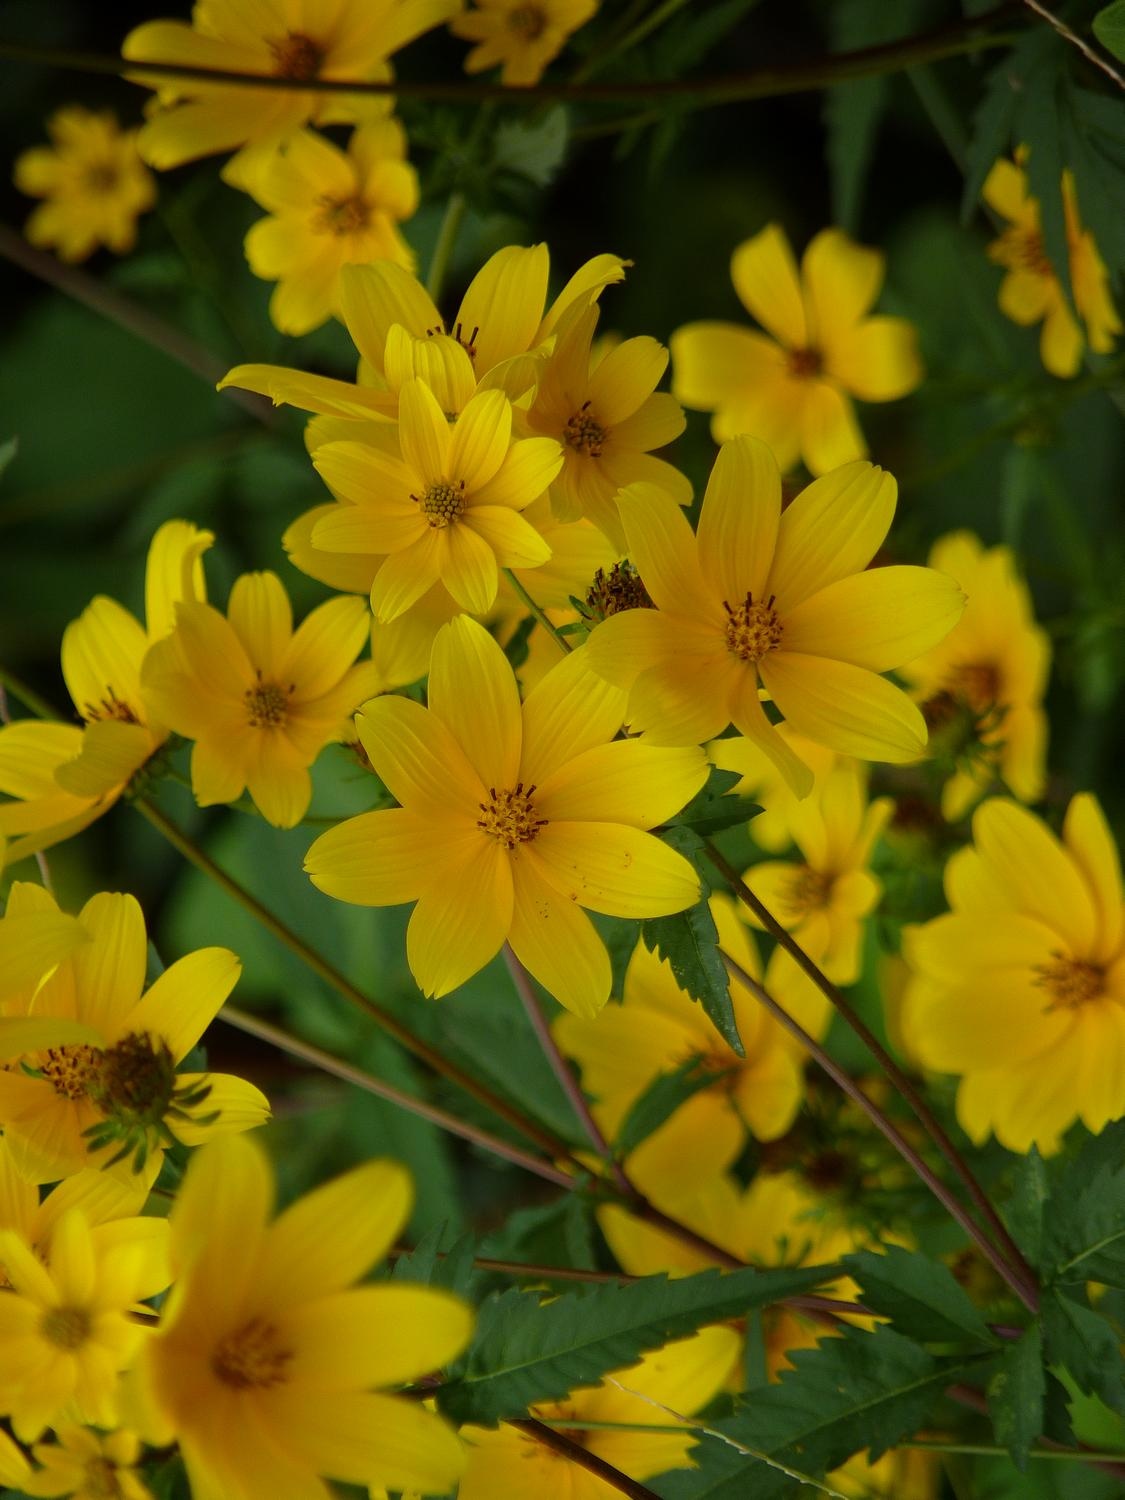 - Yellow flowers, blowing in the wind, - Panasonic DMC-FZ35 - - art  - photography - by Tony Karp